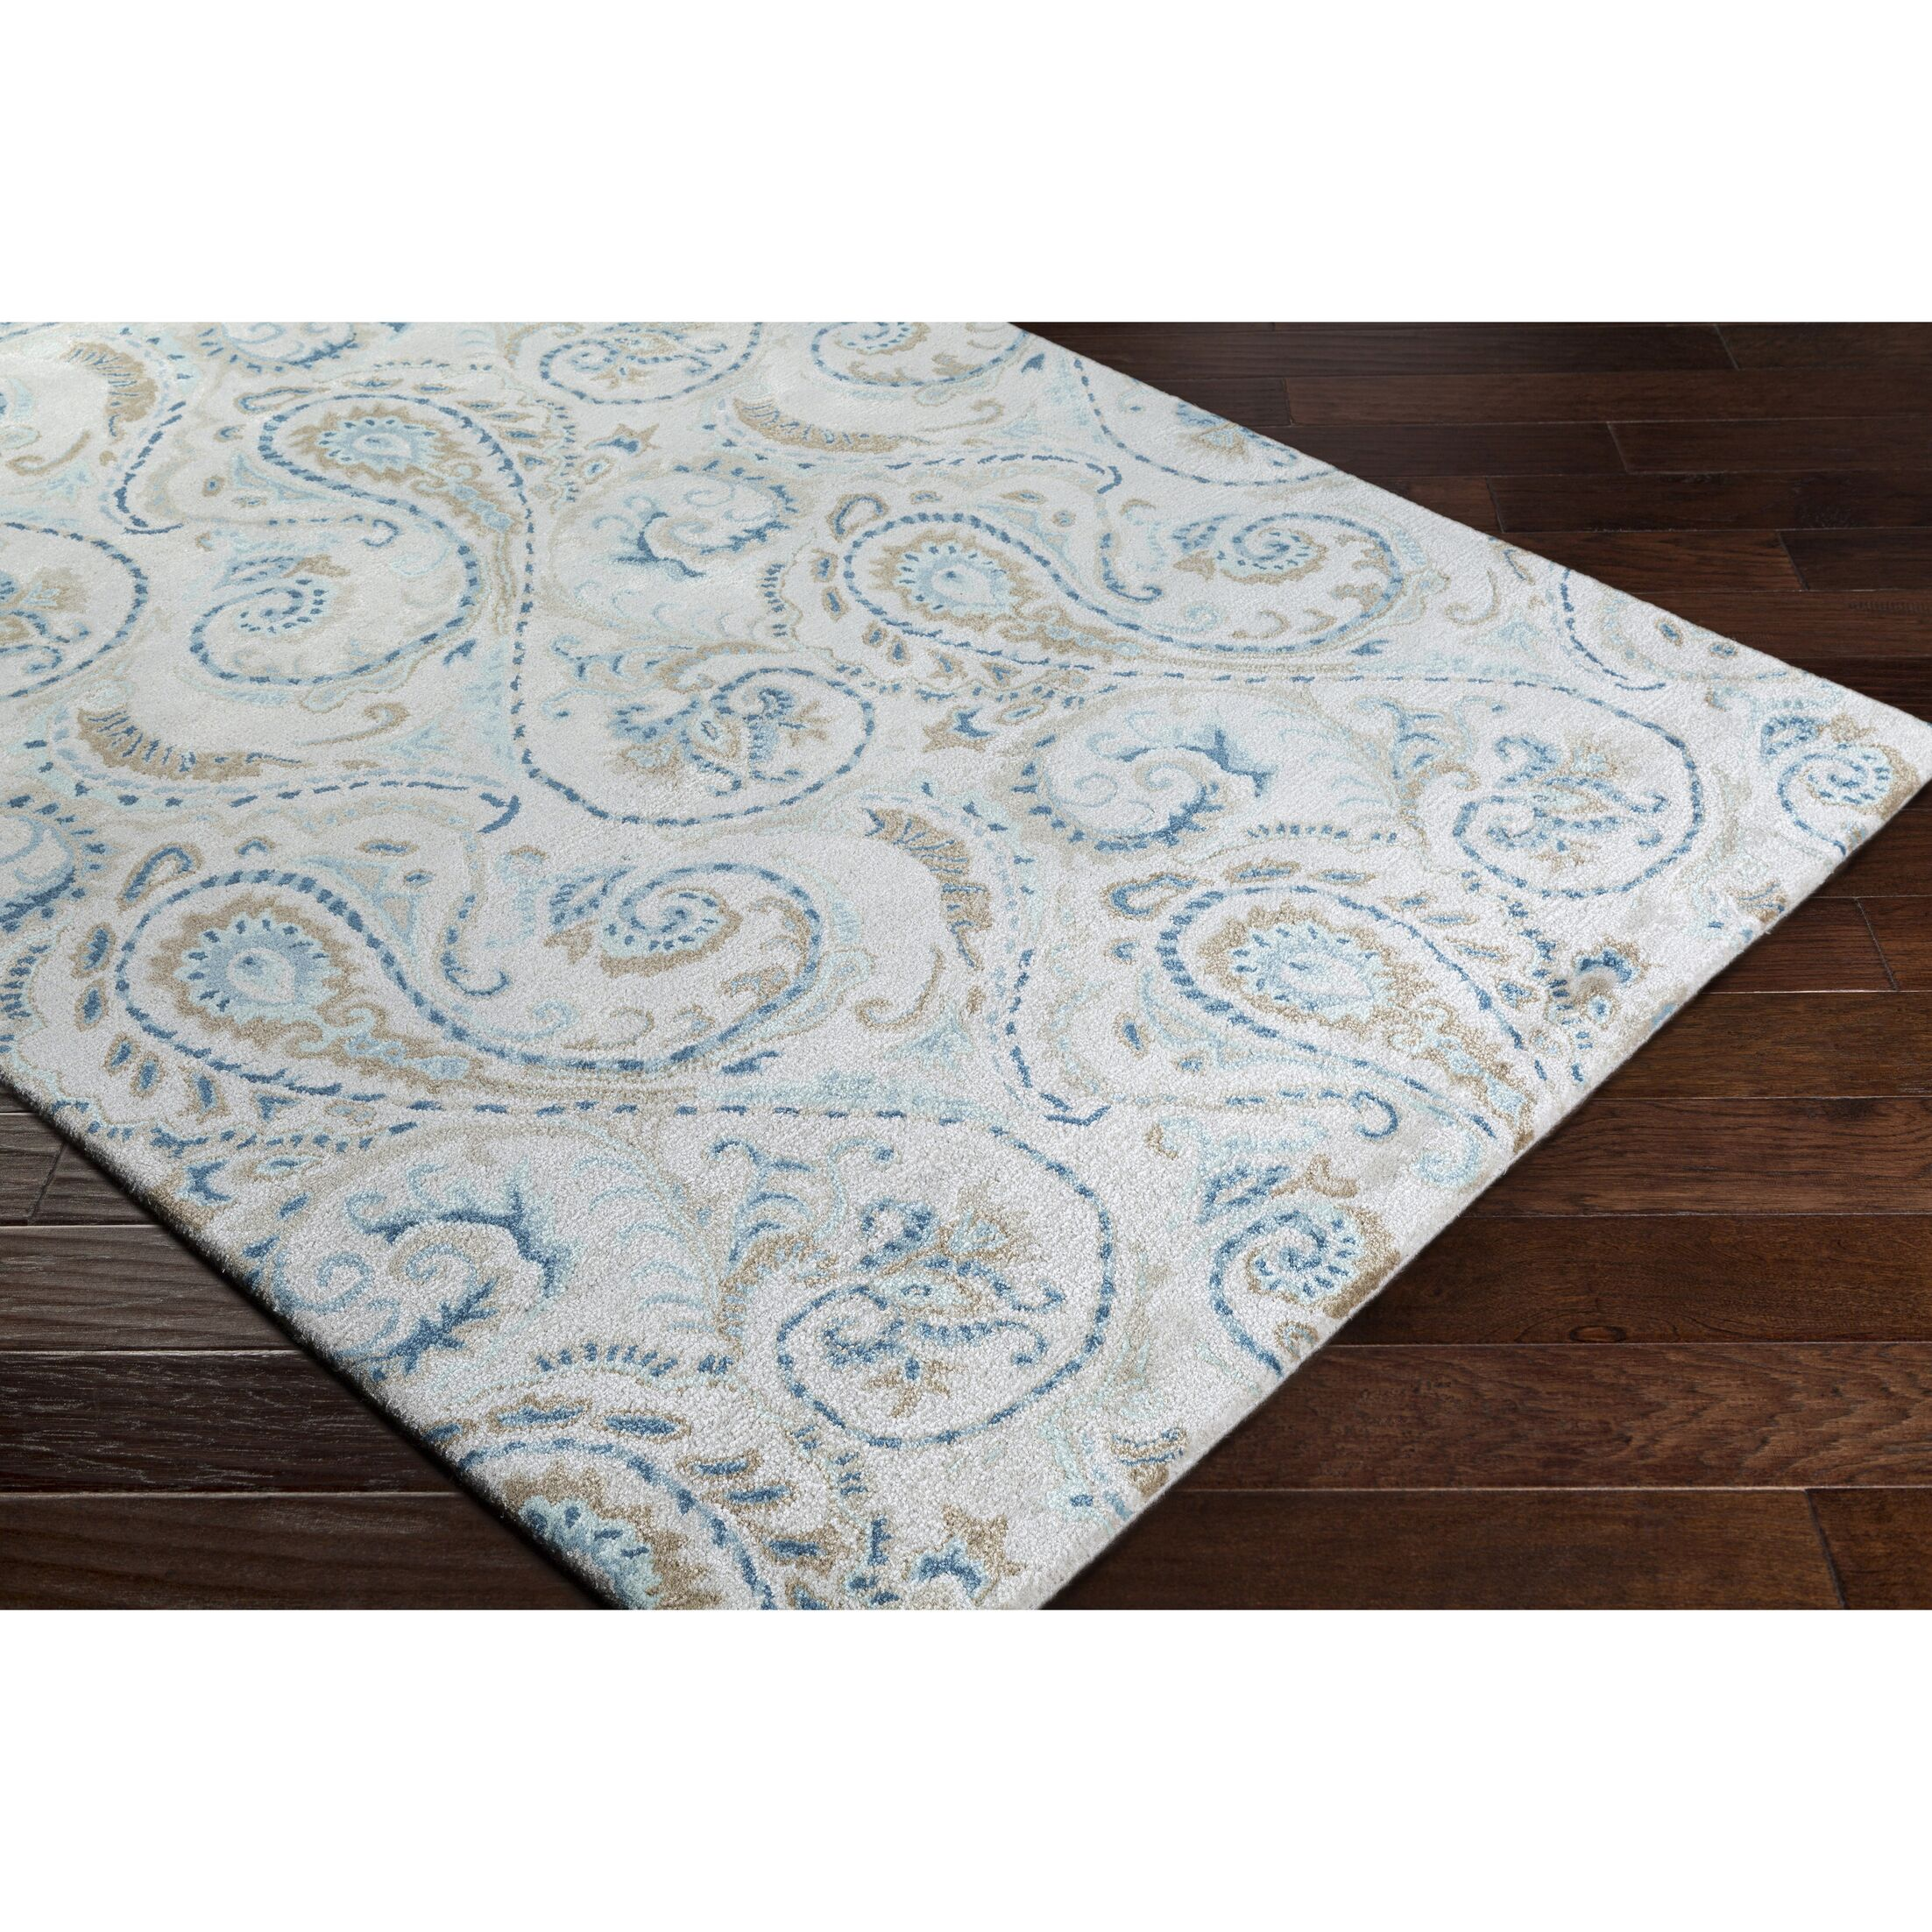 Houser Hand-Tufted Floral and paisley Area Rug Rug Size: Rectangle 9' x 13'